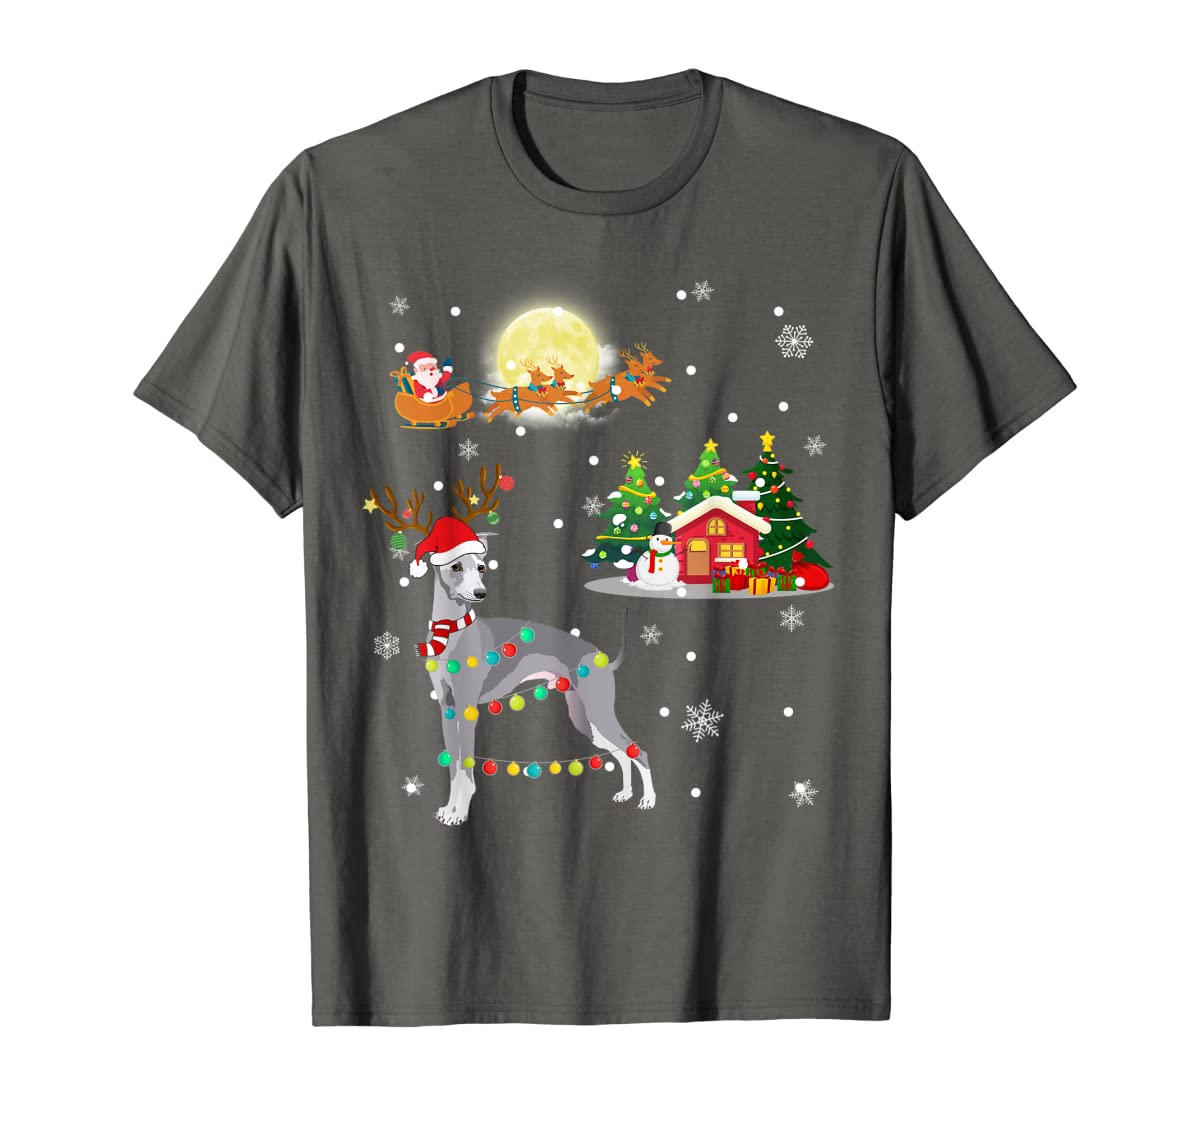 Greyhound Dog Led Light Christmas 2019 Gift T-Shirt-Men's T-Shirt-Dark Heather